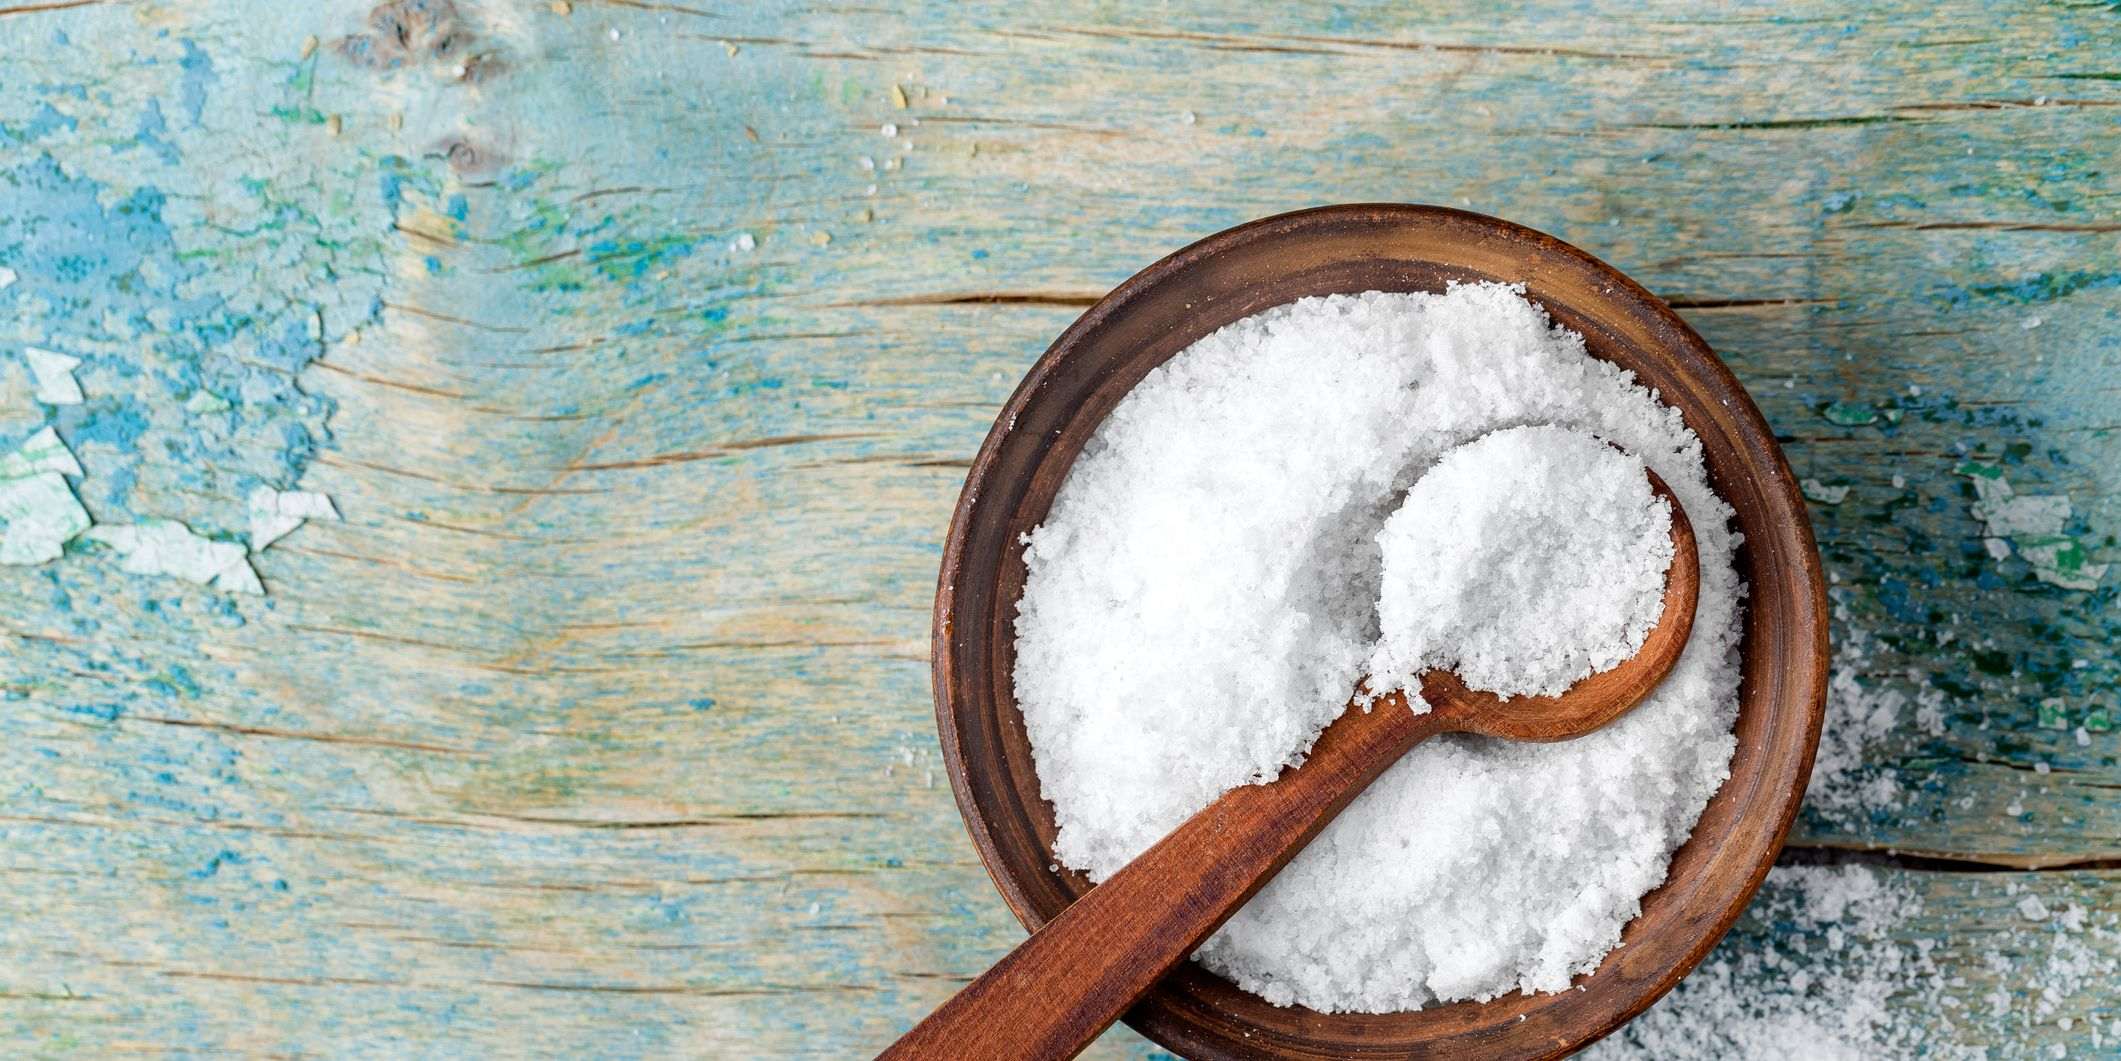 salt in wooden bowl with wooden spoon on blue wooden table, shot from above